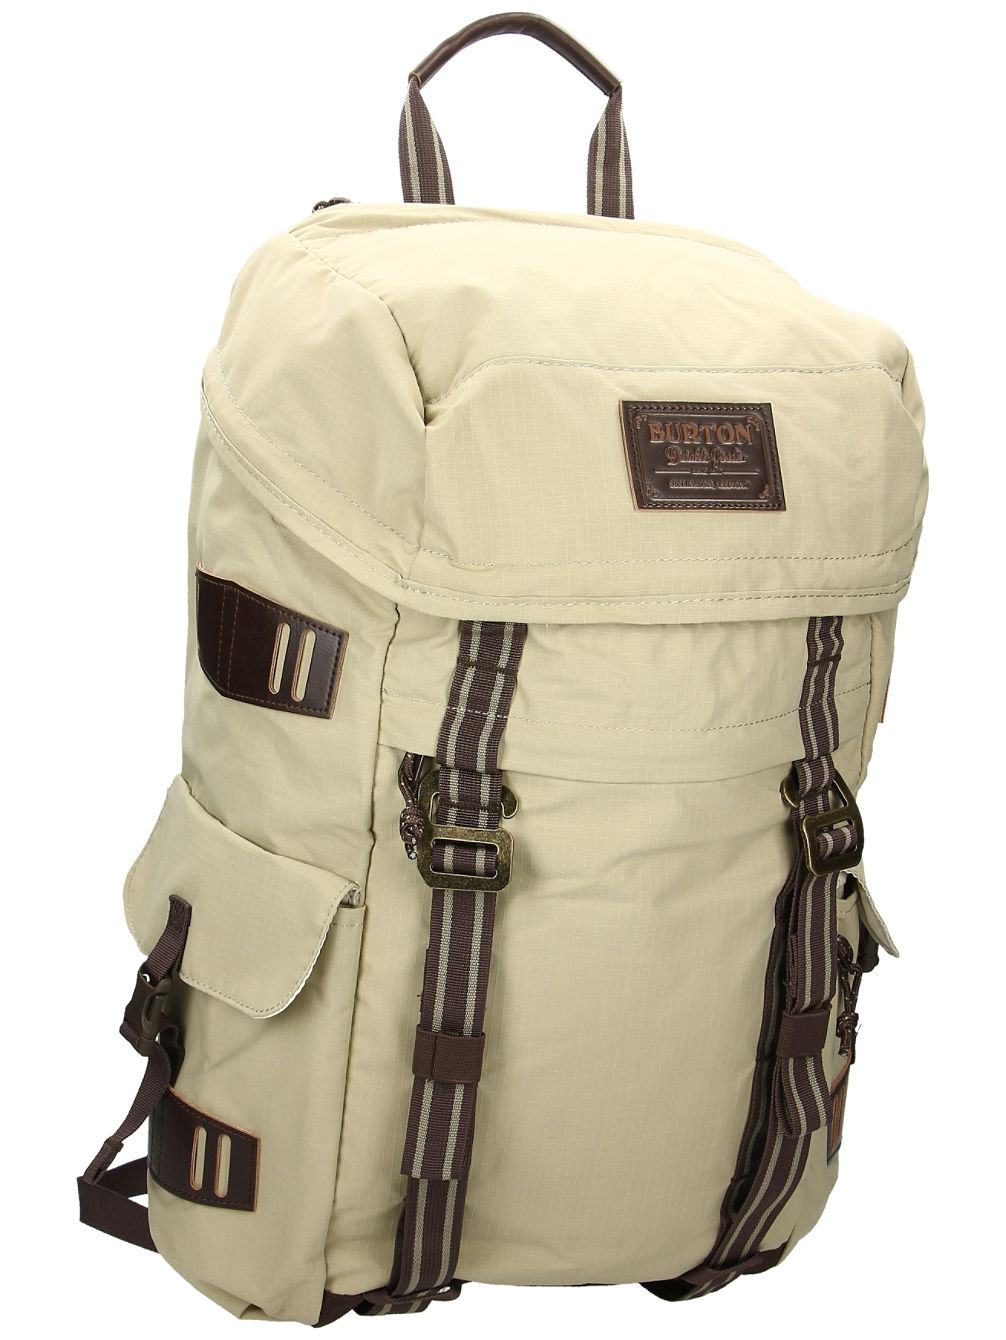 d1275b18044 Buy Burton Annex Backpack online at Blue Tomato